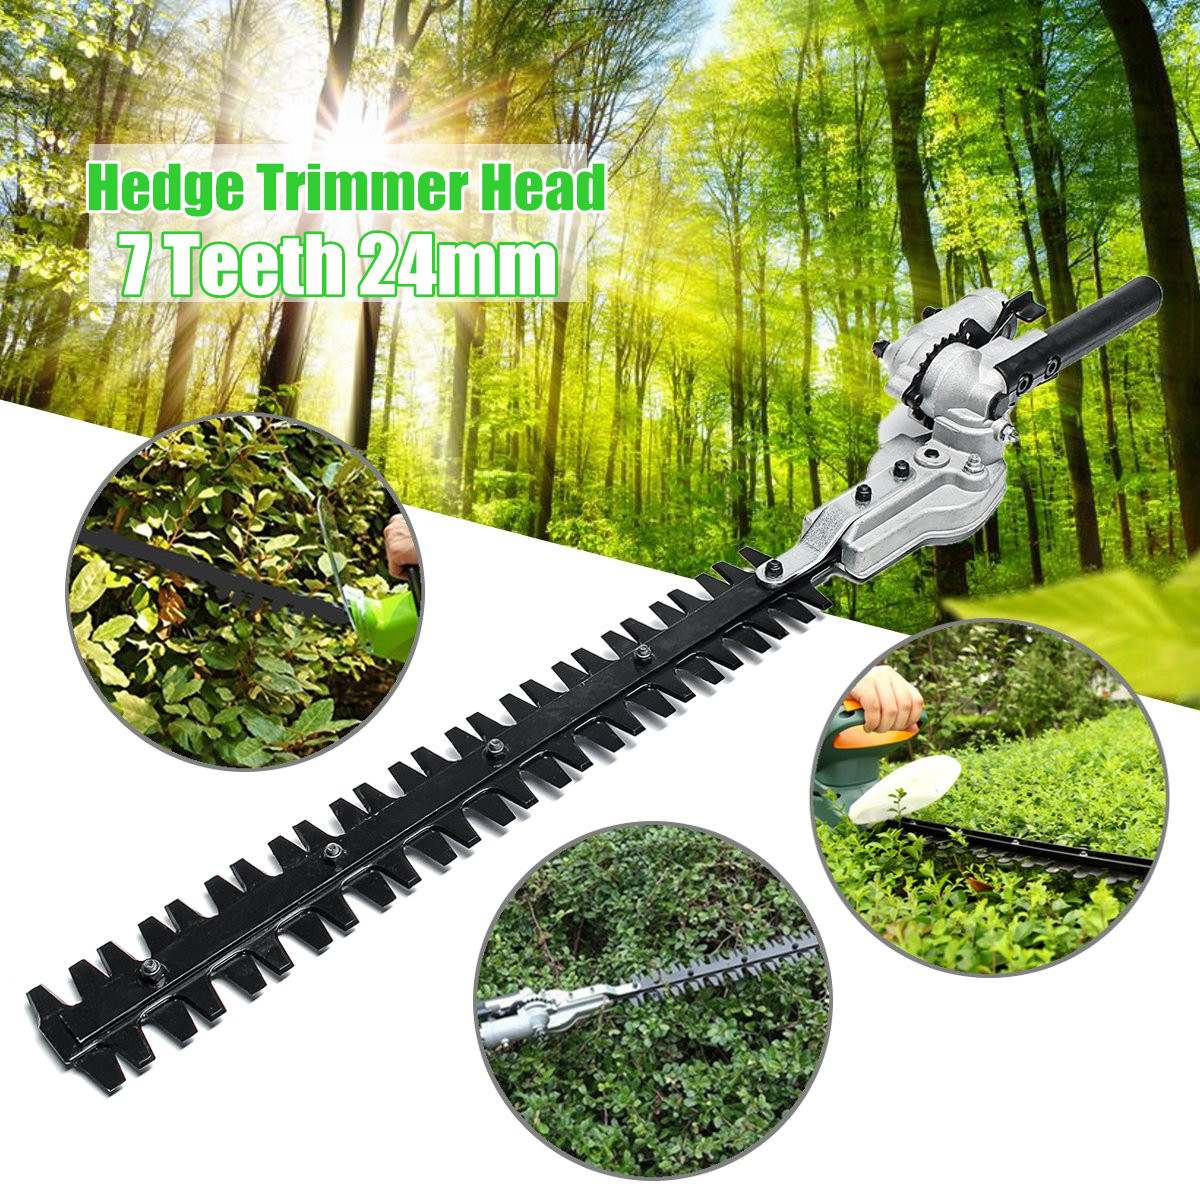 7 Teeth Gearboxs 24mm Pole Hedge Trimmer Bush Cutter Head Attachment For Trimming Hedges Chainsaw Garden Power Tools